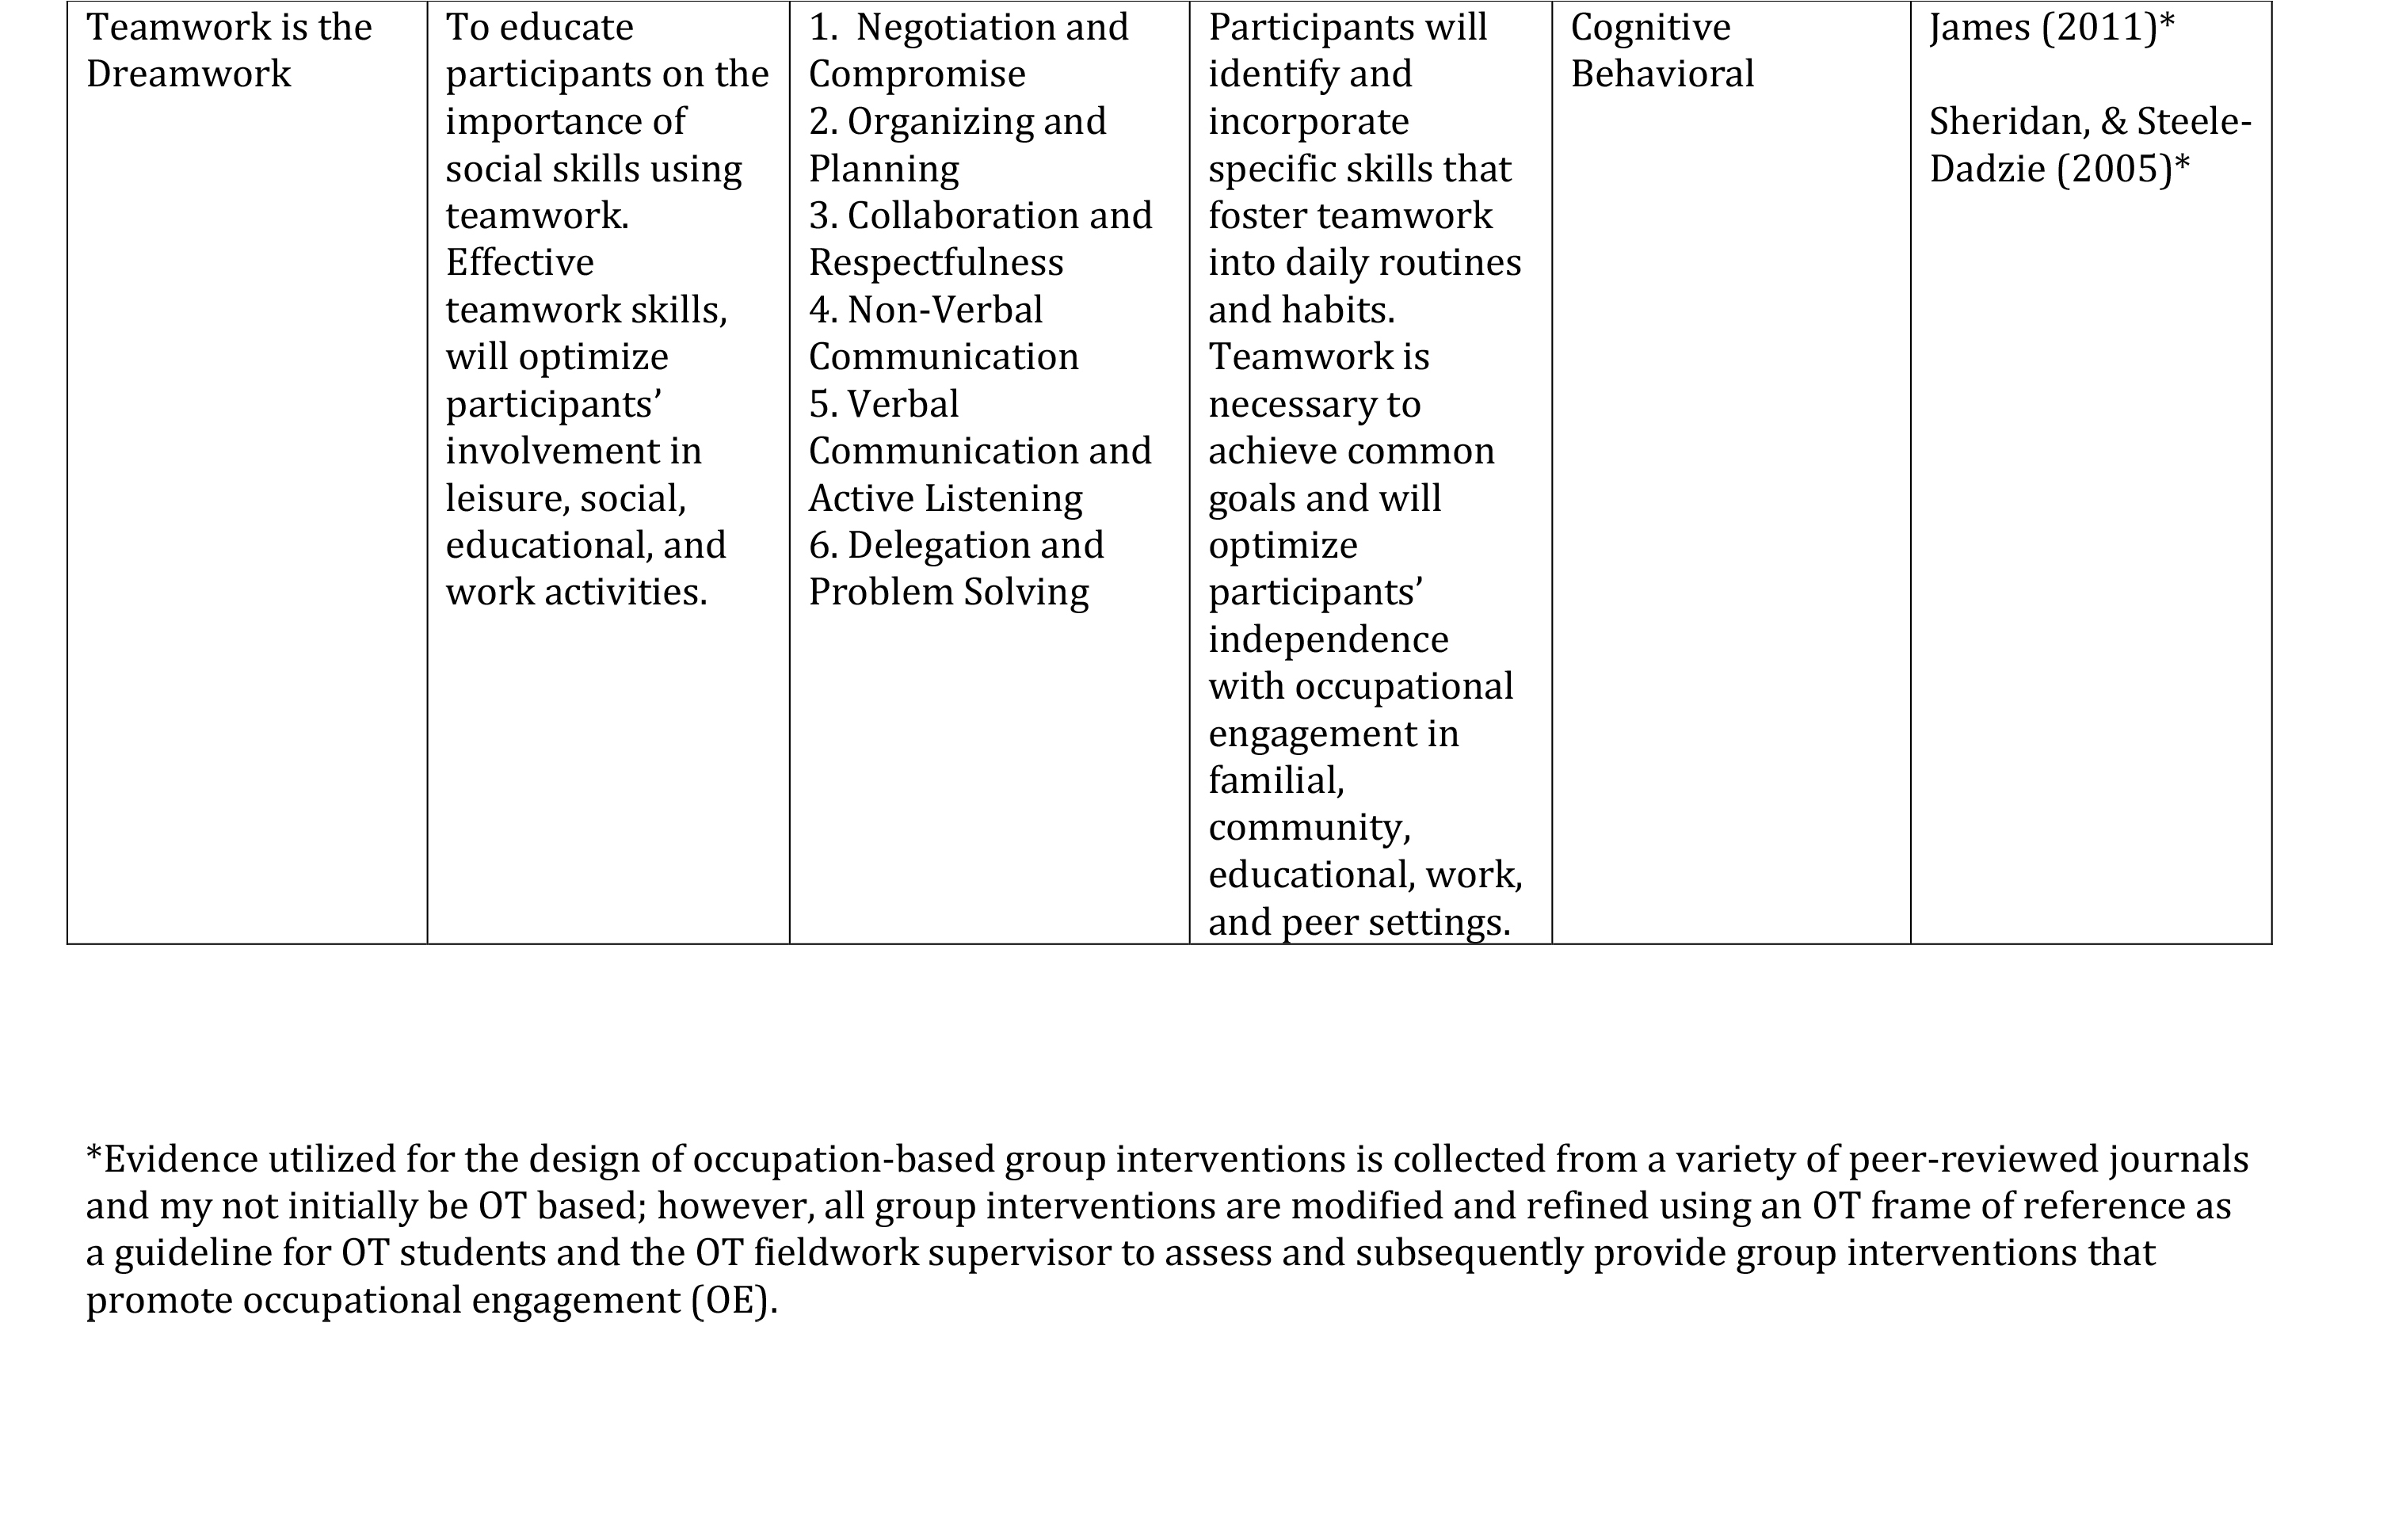 Evidence-based, Occupation-based Group InterventionsAll groups are provided in a structured, supervised, interactive format. Learning activities are introduced using a variety of platforms such as smart boards, computers and videos. Learning activities include an individual and/or group learning assessment. For example, completion of an interest checklist, art project, or role-playing activity. All groups are run in the facility's classroom, courtyard, day room, or gym under constant supervision by correctional staff.